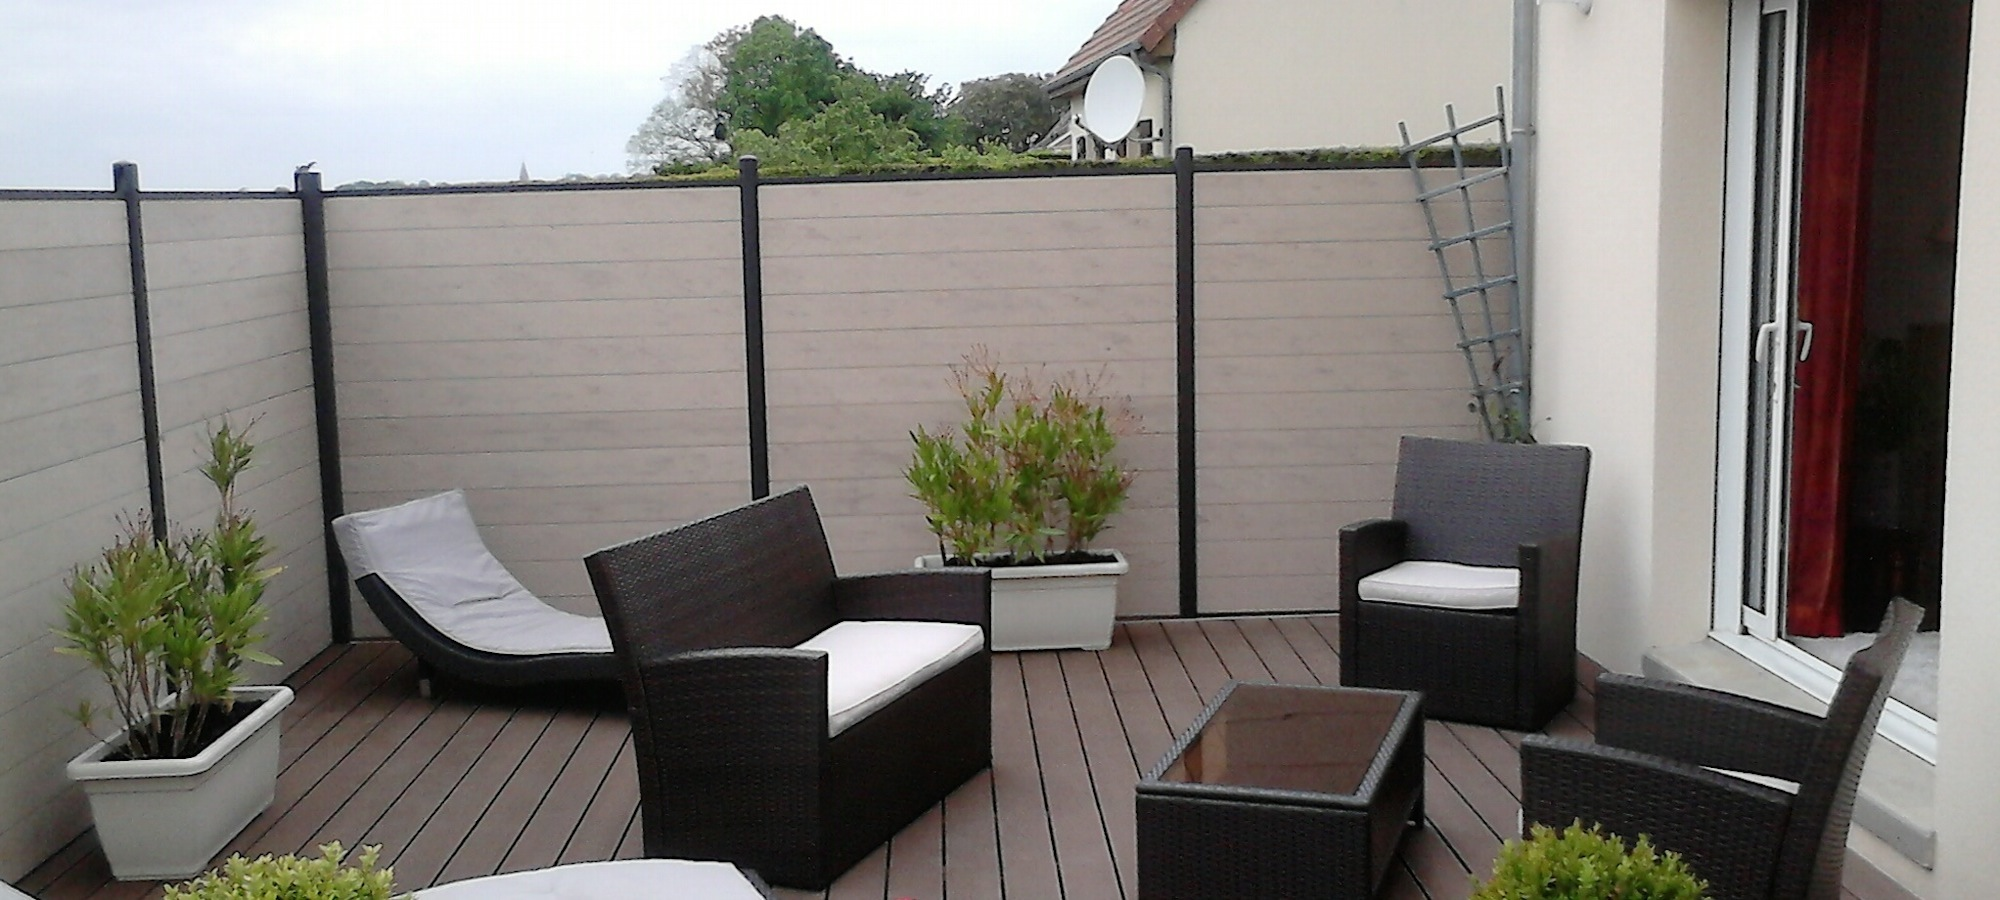 terrasse bois composite prix prix d 39 une terrasse composite au m2 terrasse bois composite. Black Bedroom Furniture Sets. Home Design Ideas